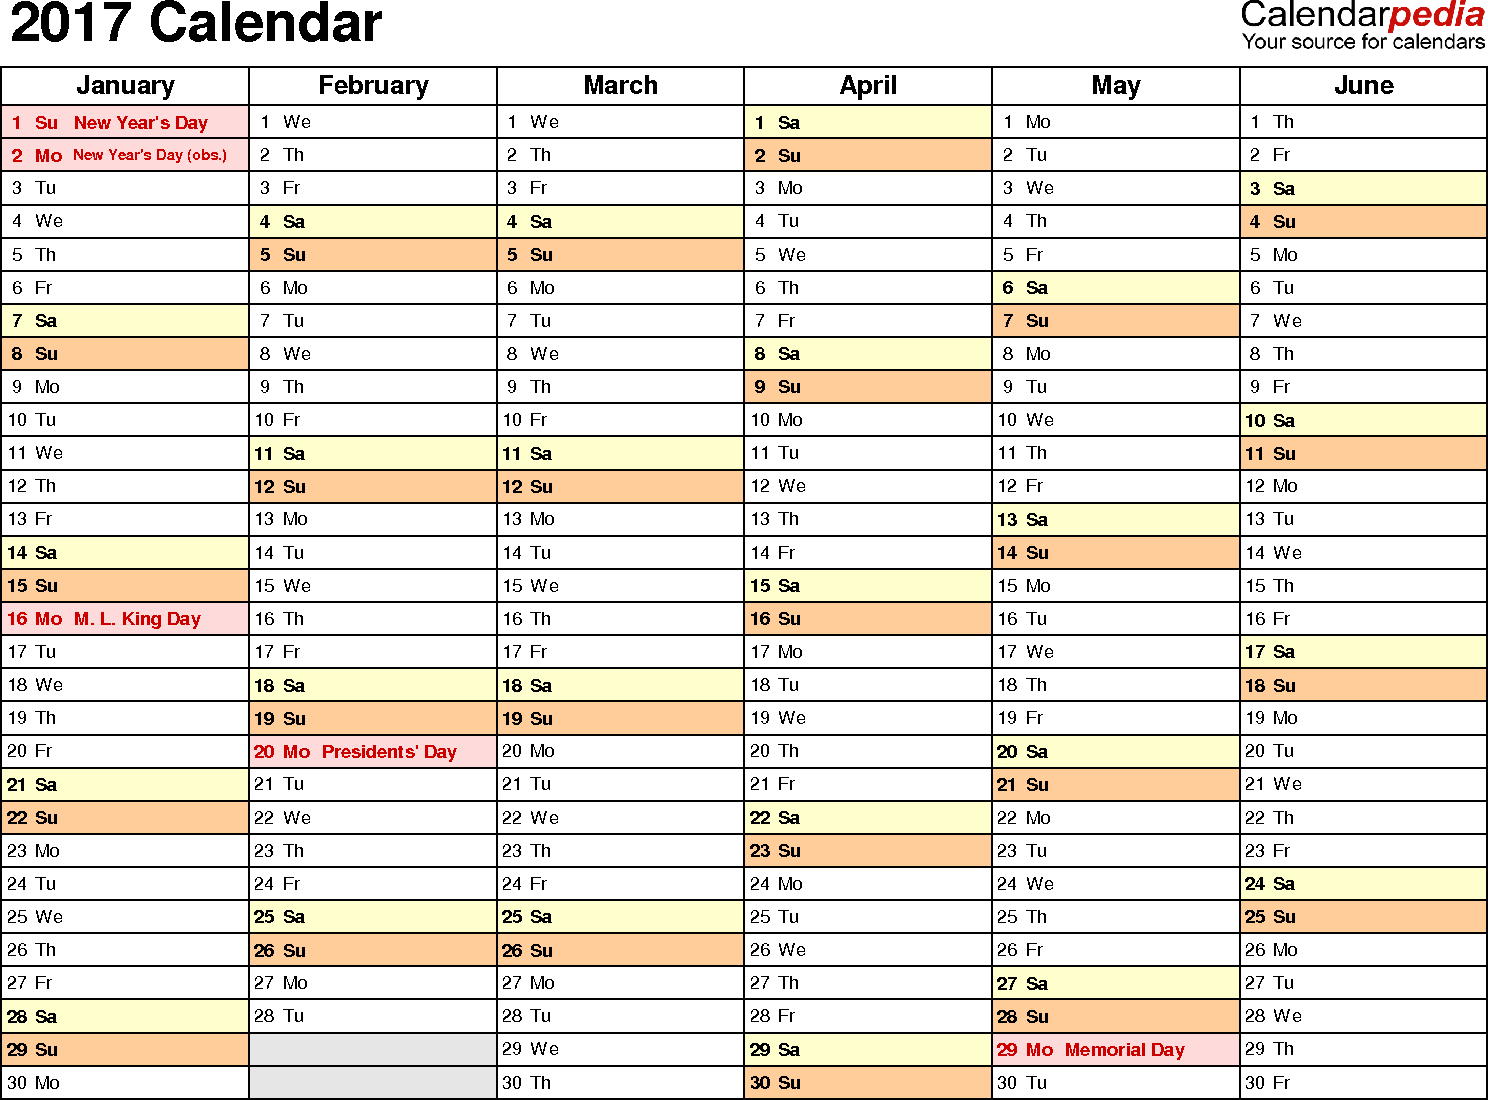 Ediblewildsus  Mesmerizing  Calendar  Download  Free Printable Excel Templates Xls With Glamorous Template   Calendar For Excel Months Horizontally  Pages Landscape Orientation With Lovely Excel Convert String To Number Also Excel Report In Addition How To Record A Macro In Excel  And Convert Pdf Table To Excel As Well As Sum Formula Excel Additionally Read Excel In R From Calendarpediacom With Ediblewildsus  Glamorous  Calendar  Download  Free Printable Excel Templates Xls With Lovely Template   Calendar For Excel Months Horizontally  Pages Landscape Orientation And Mesmerizing Excel Convert String To Number Also Excel Report In Addition How To Record A Macro In Excel  From Calendarpediacom